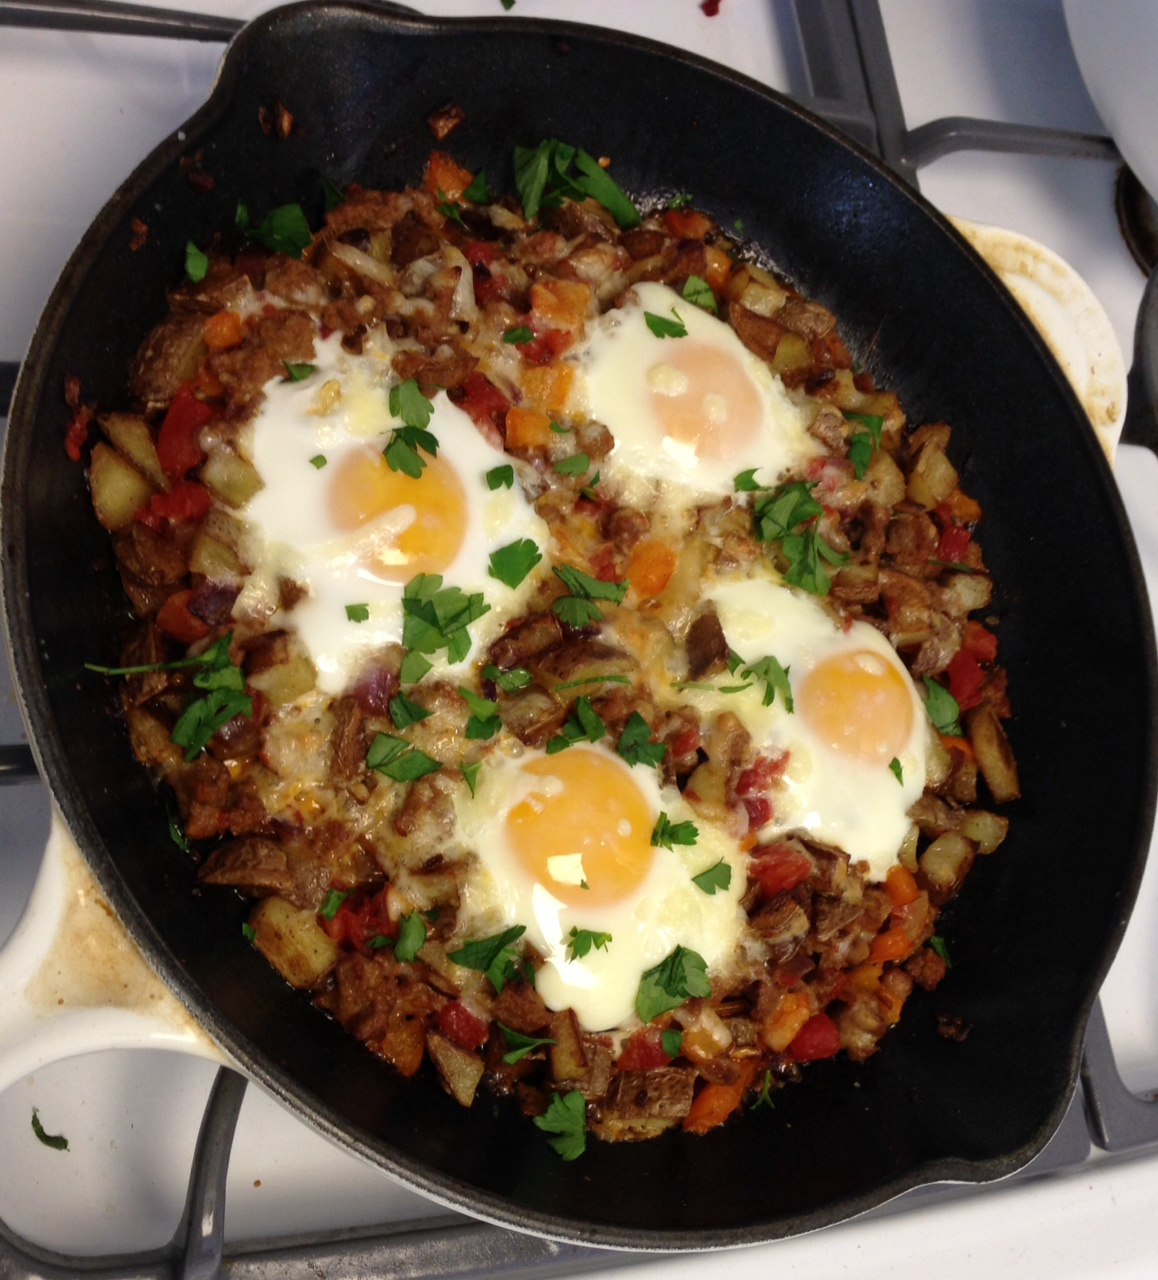 Potato and Sausage Skillet with Baked Eggs | The Dough Will Rise Again